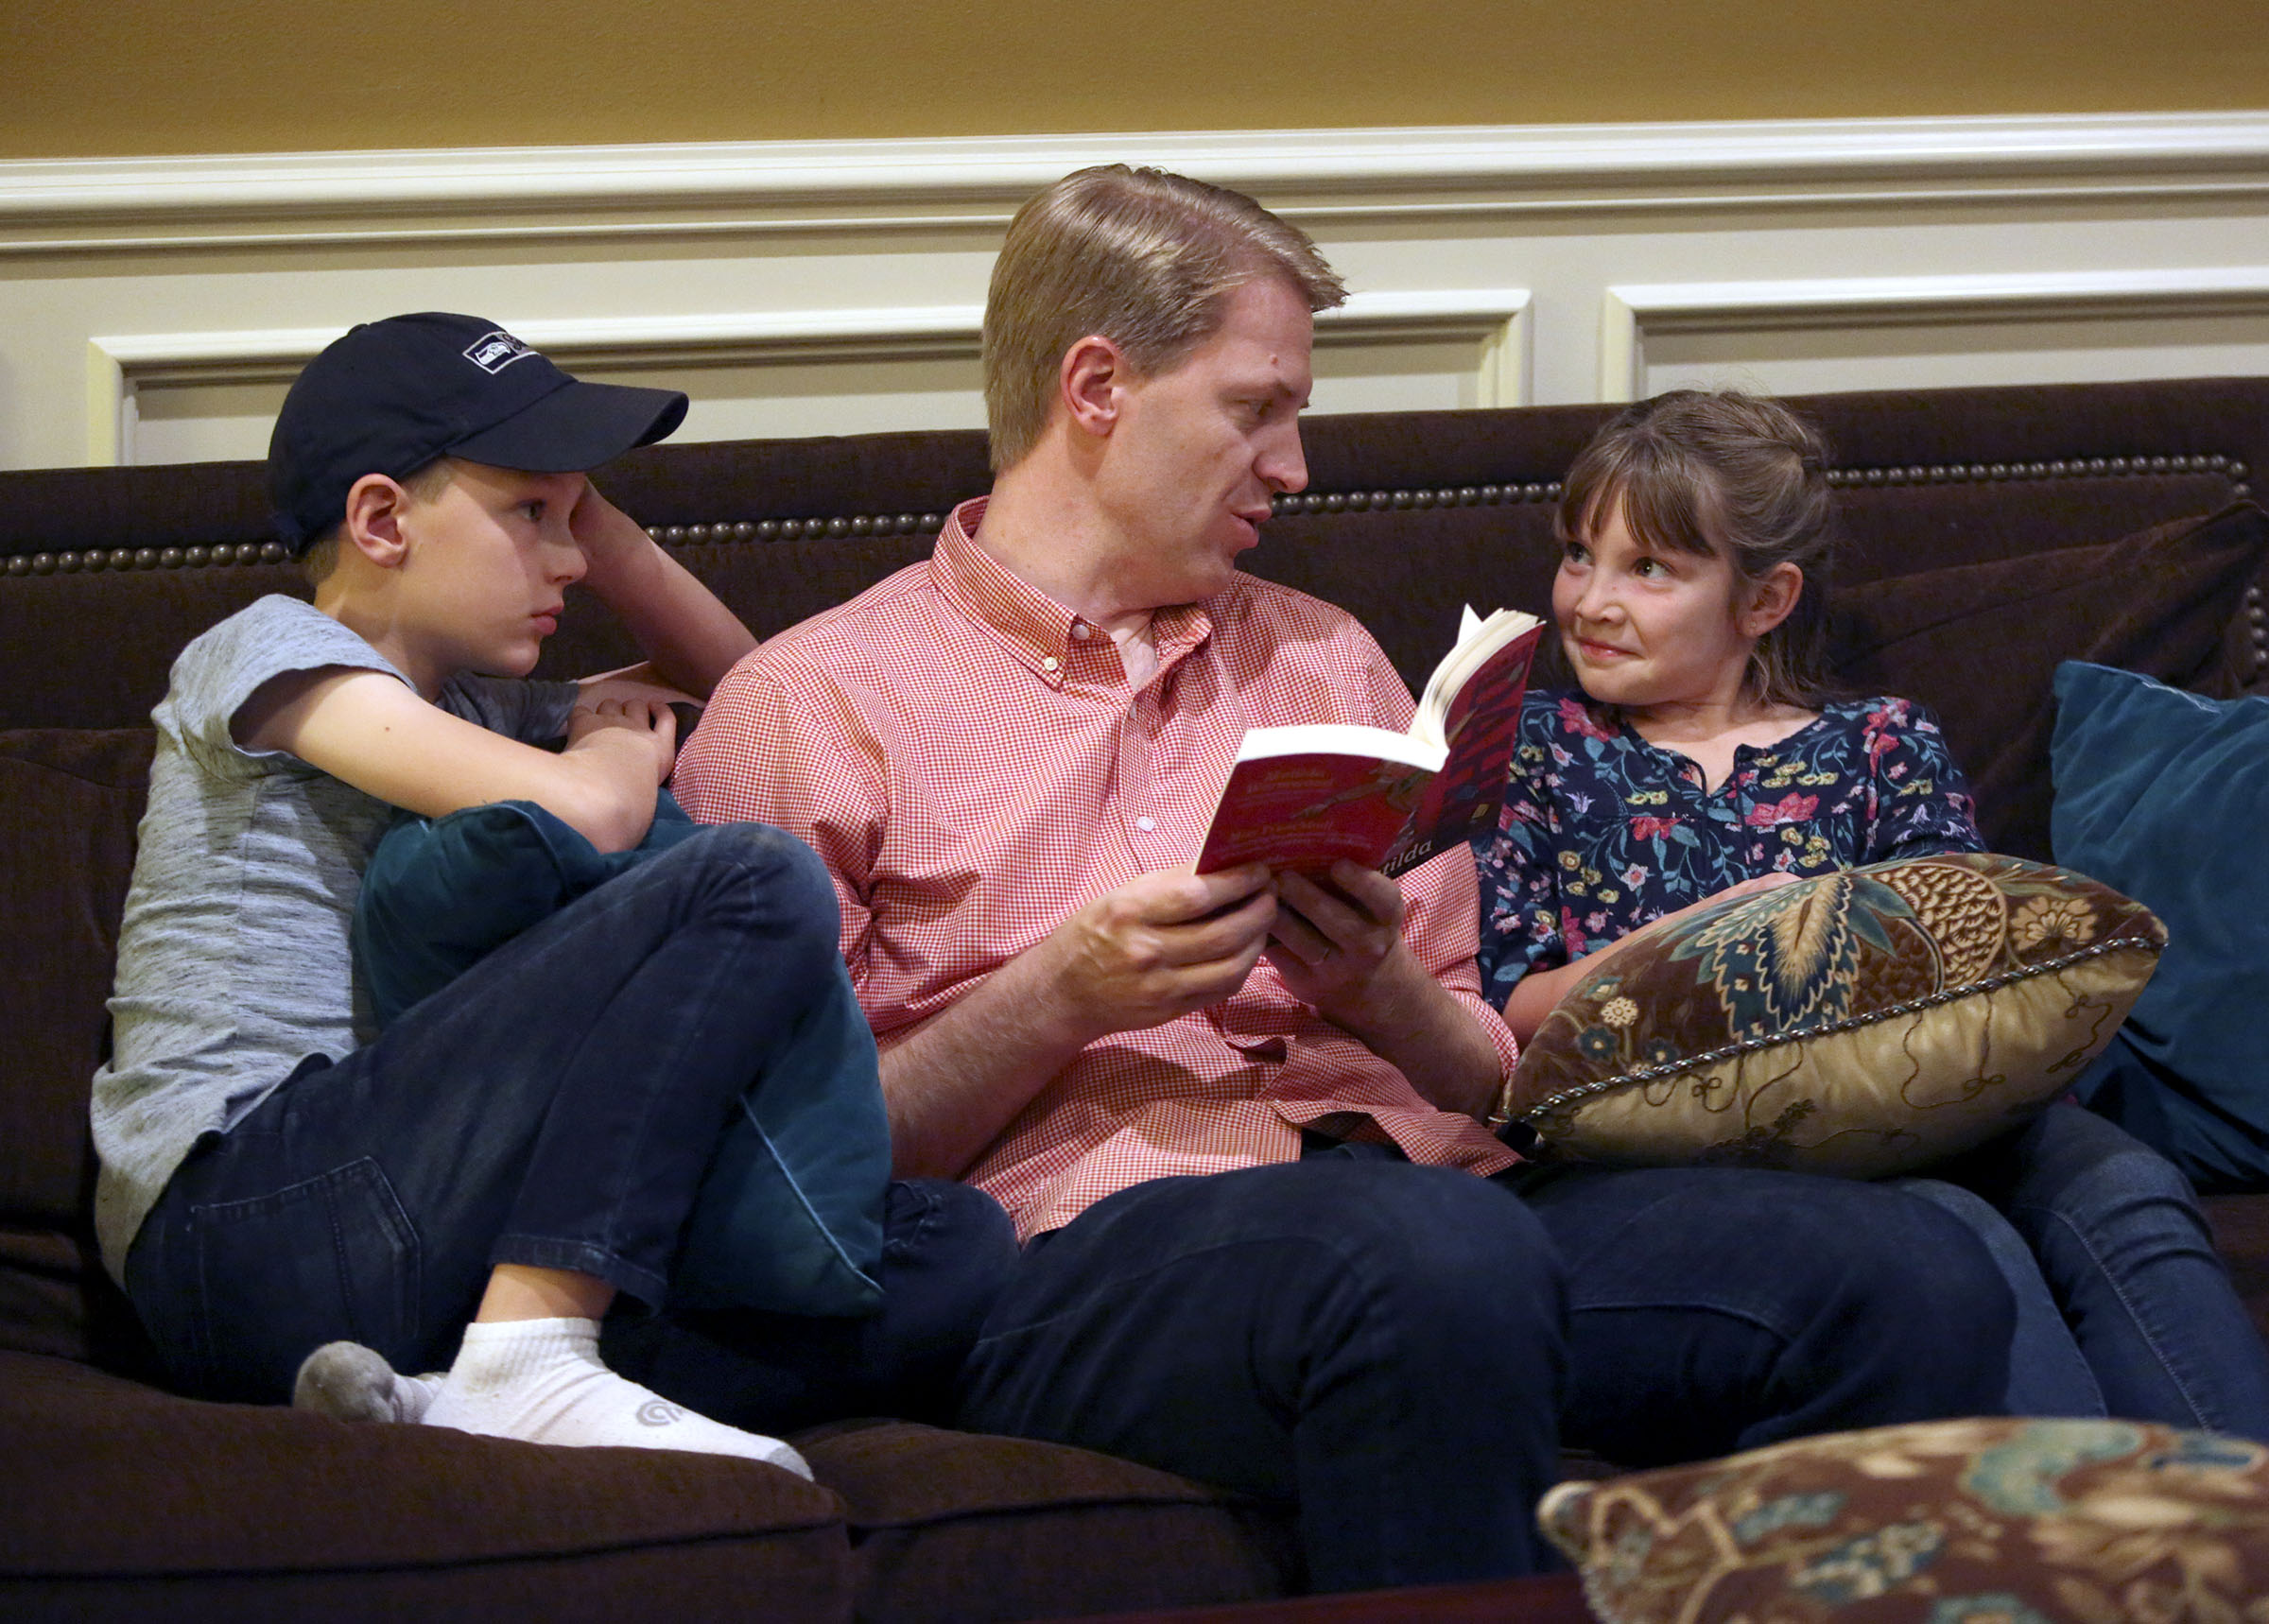 Justin Allen, center, reads to his son Tom Allen and daughter Emilia Allen at home in Renton, Wash., on Friday, Sept. 14, 2018.